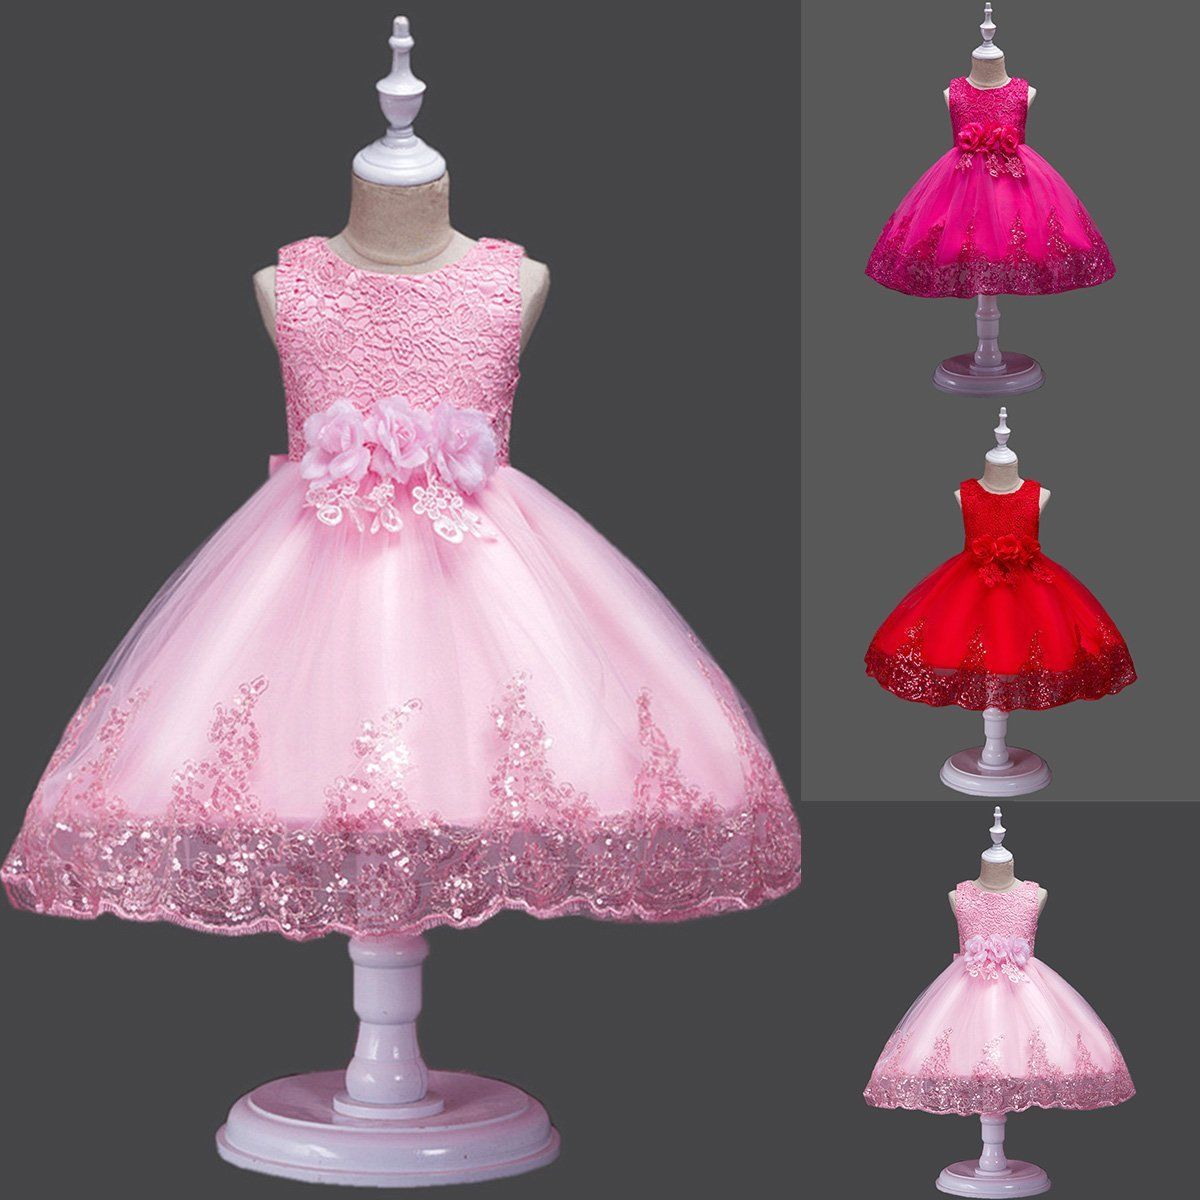 Kids Baby Flower Girls Party Lace Dress Wedding Bridesmaid Dresses Ages 2-10 Y